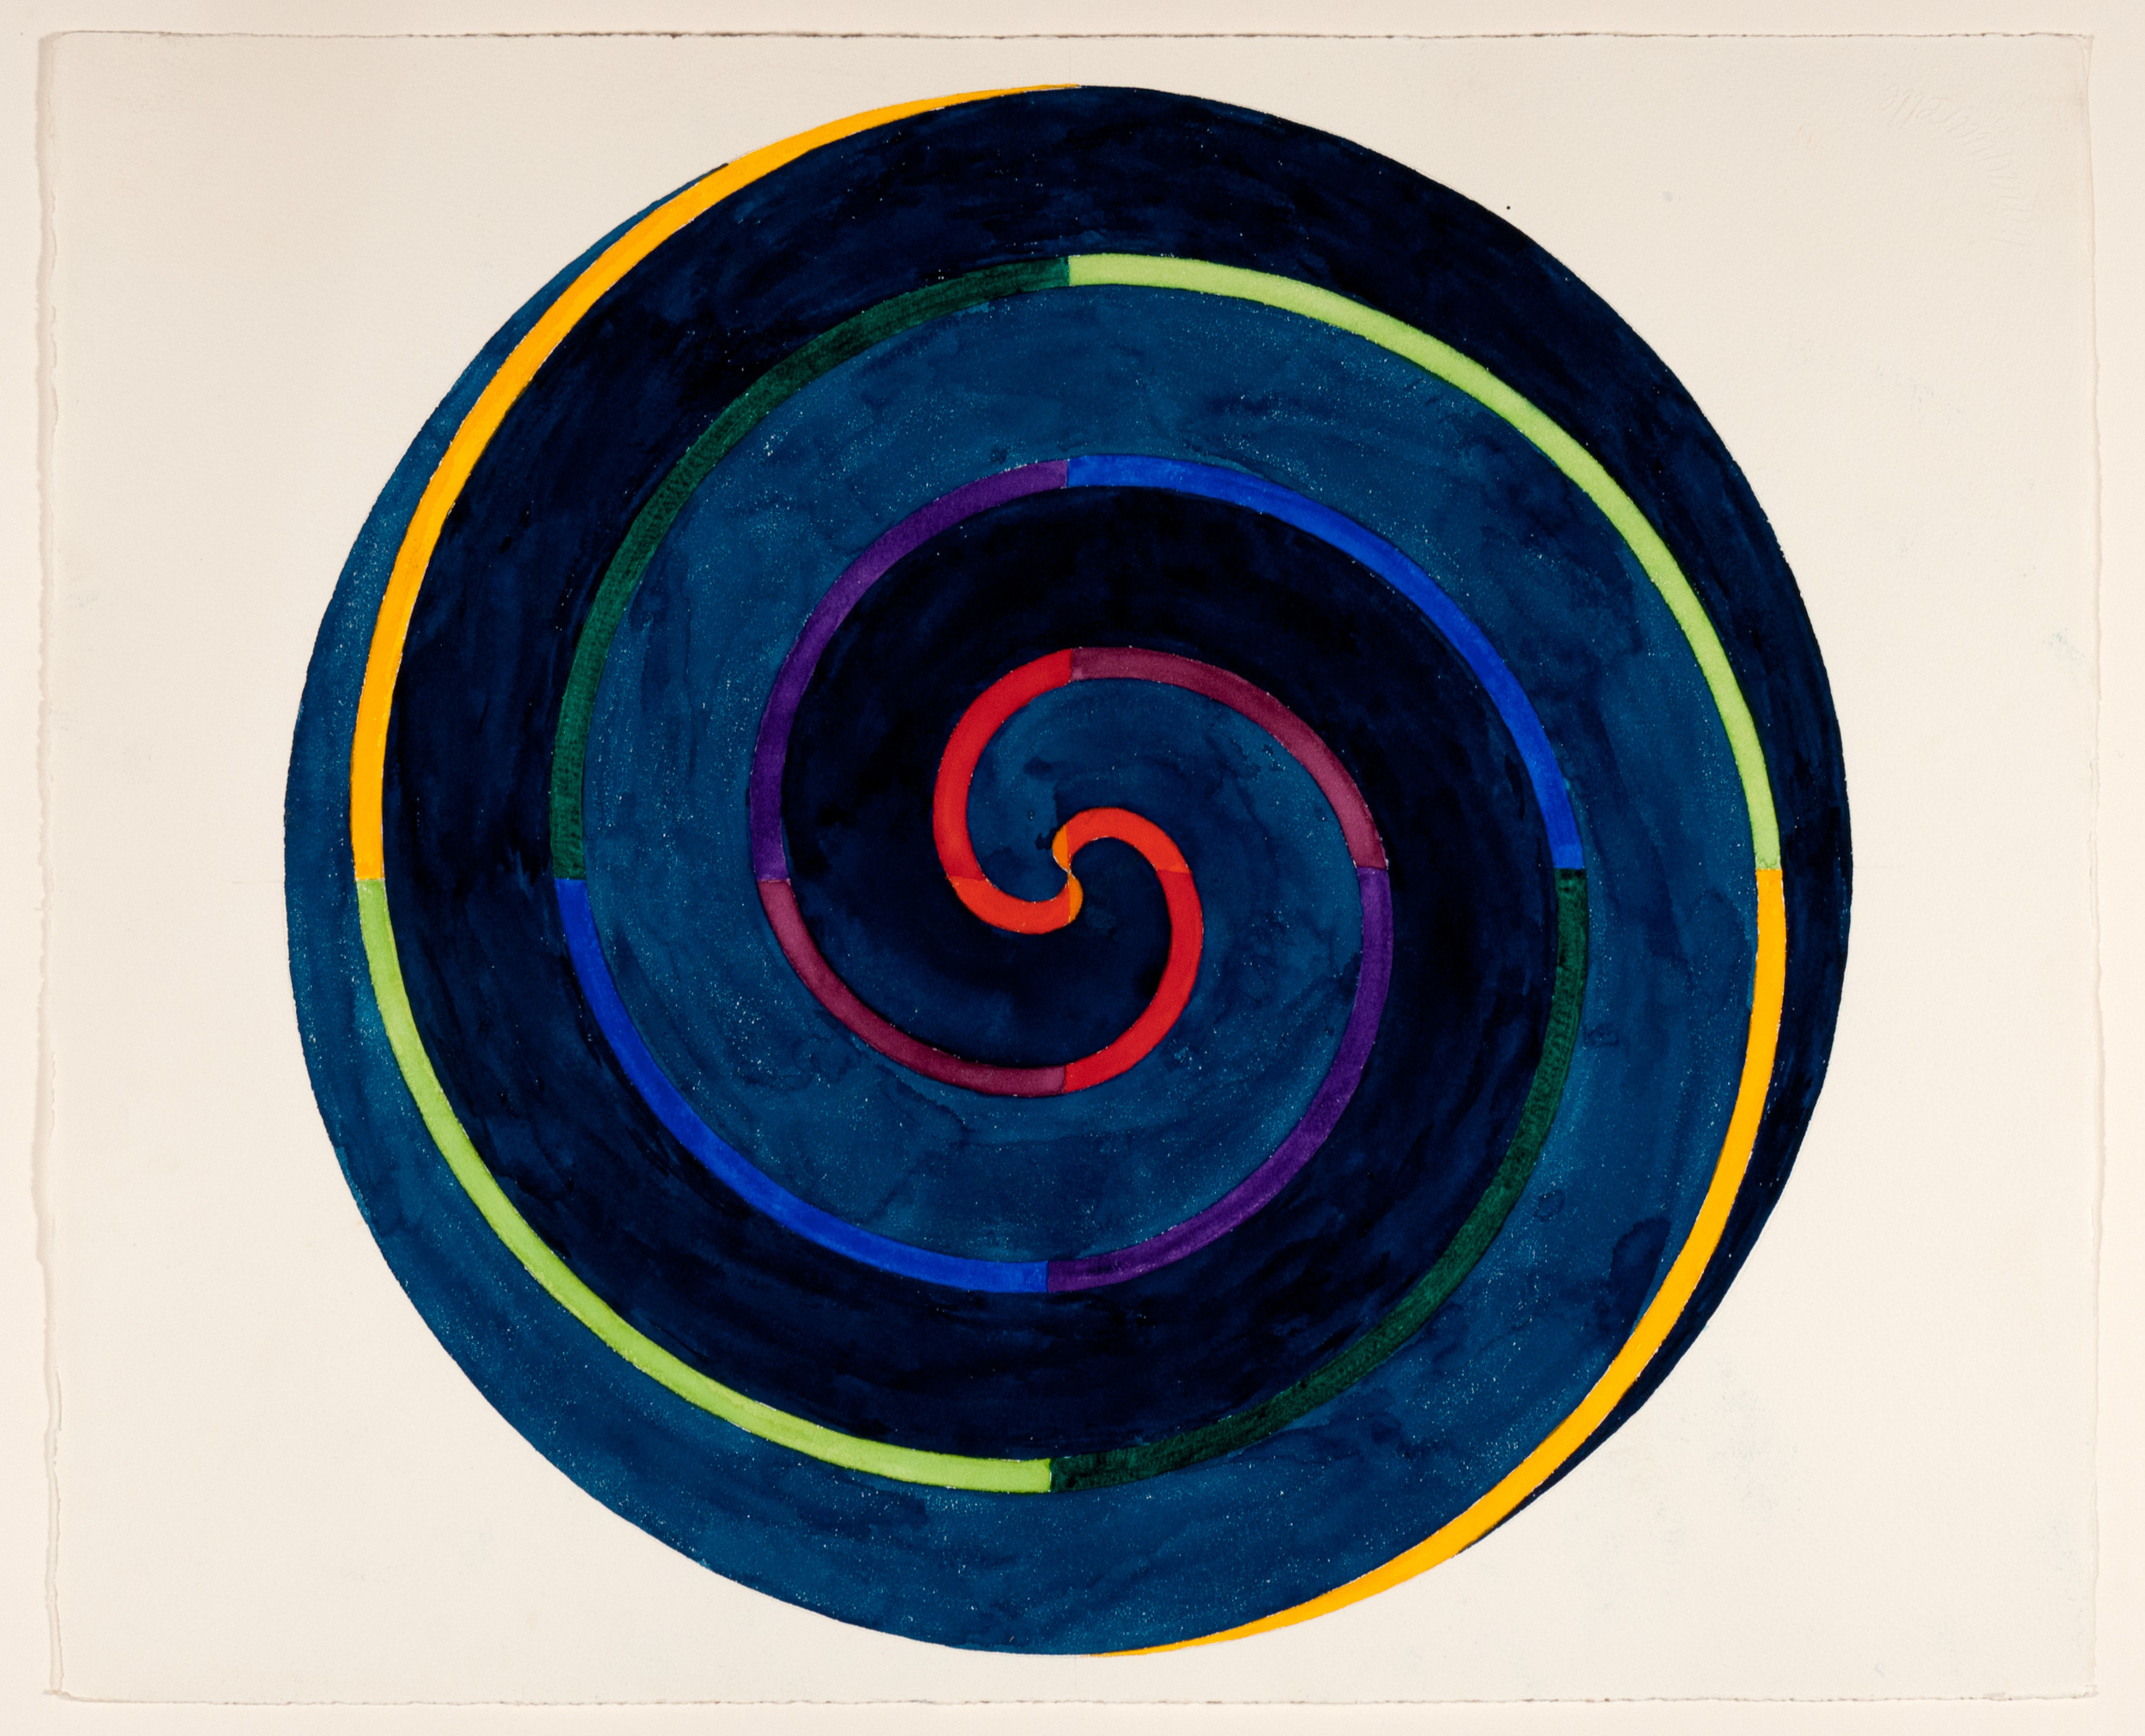 Paul Mogensen, no title (orange to yellow on prussian blue double spiral), 1975